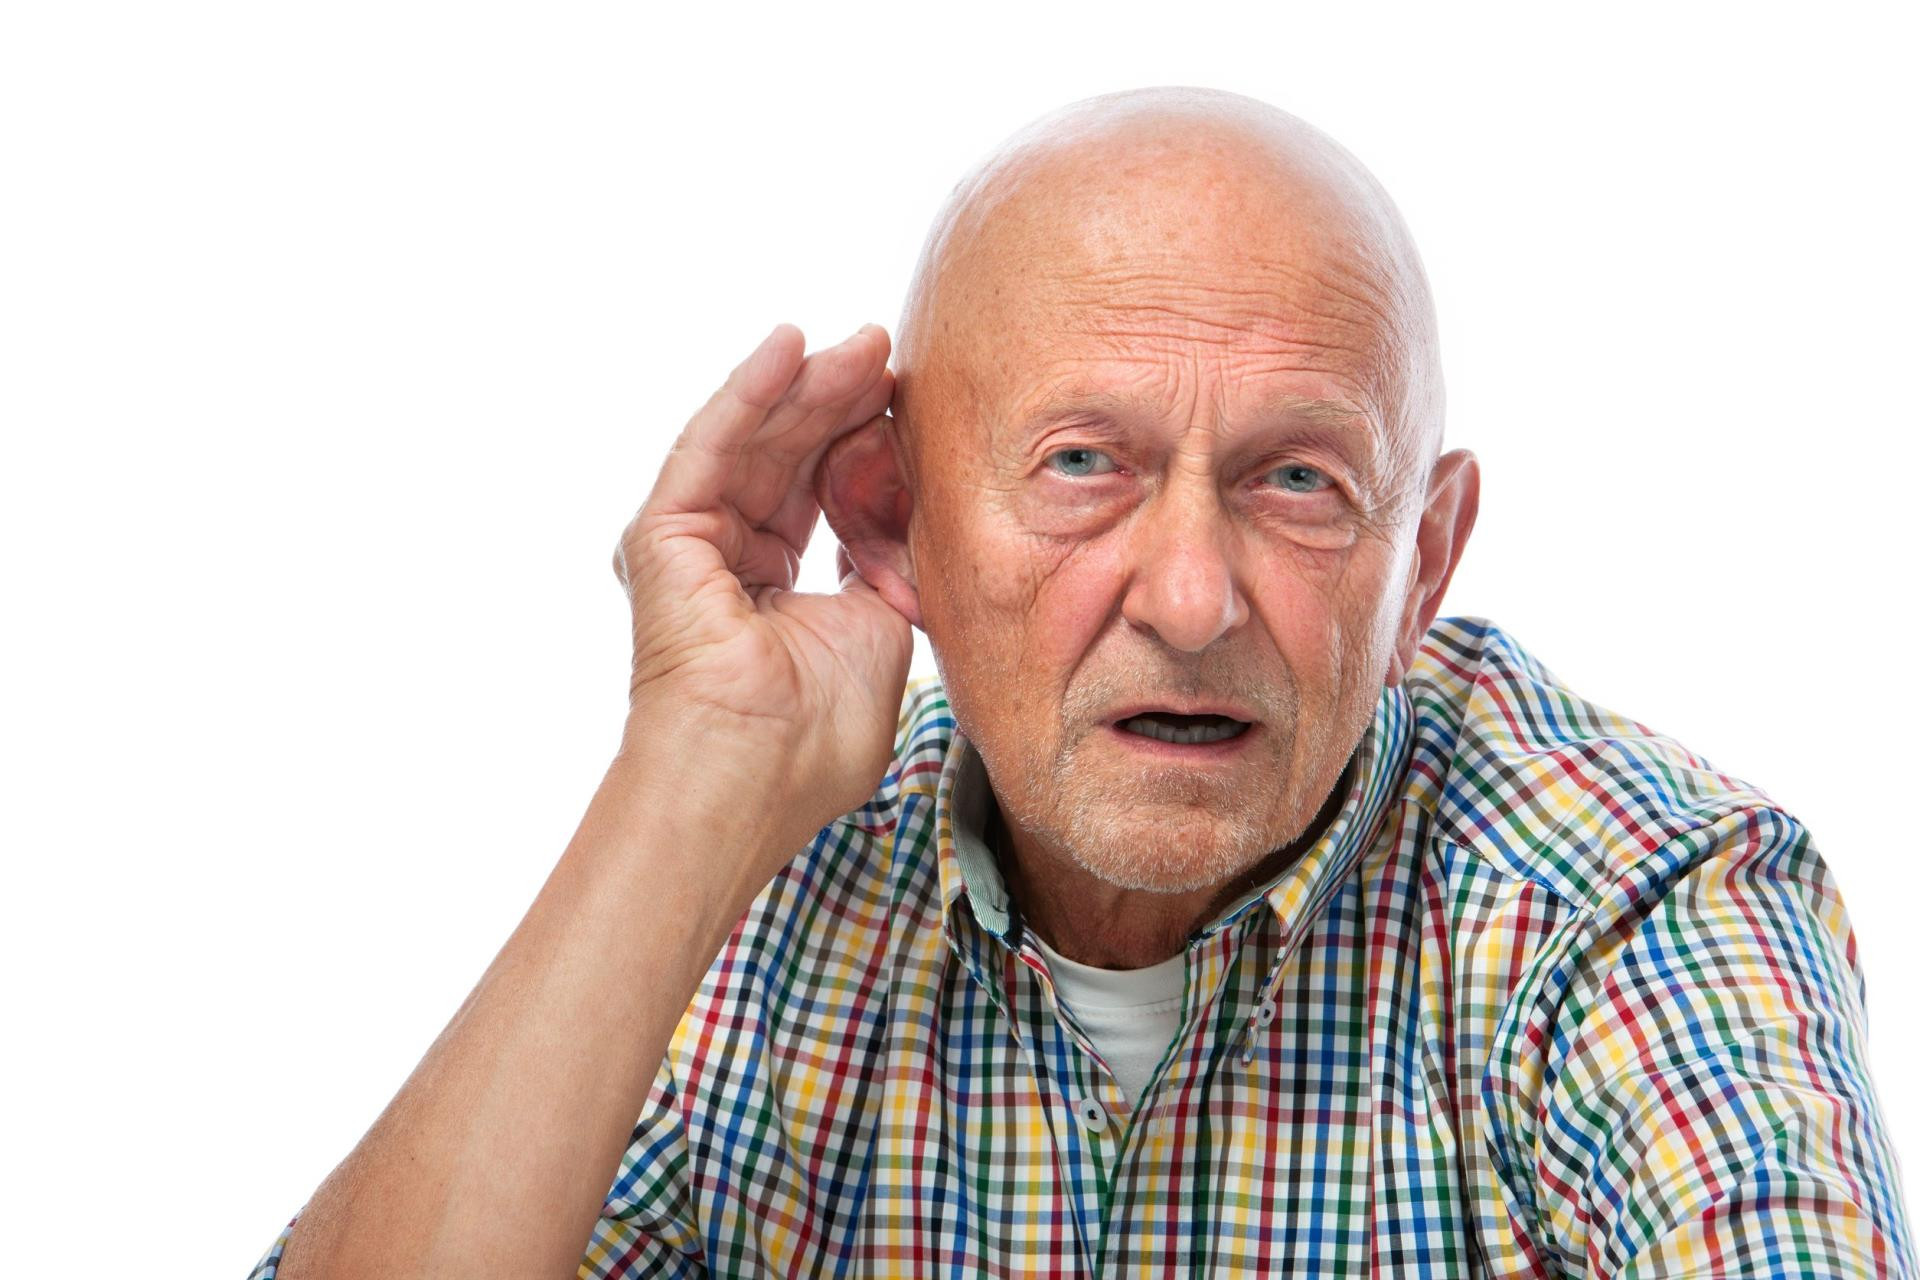 Man w hand cupped over ear